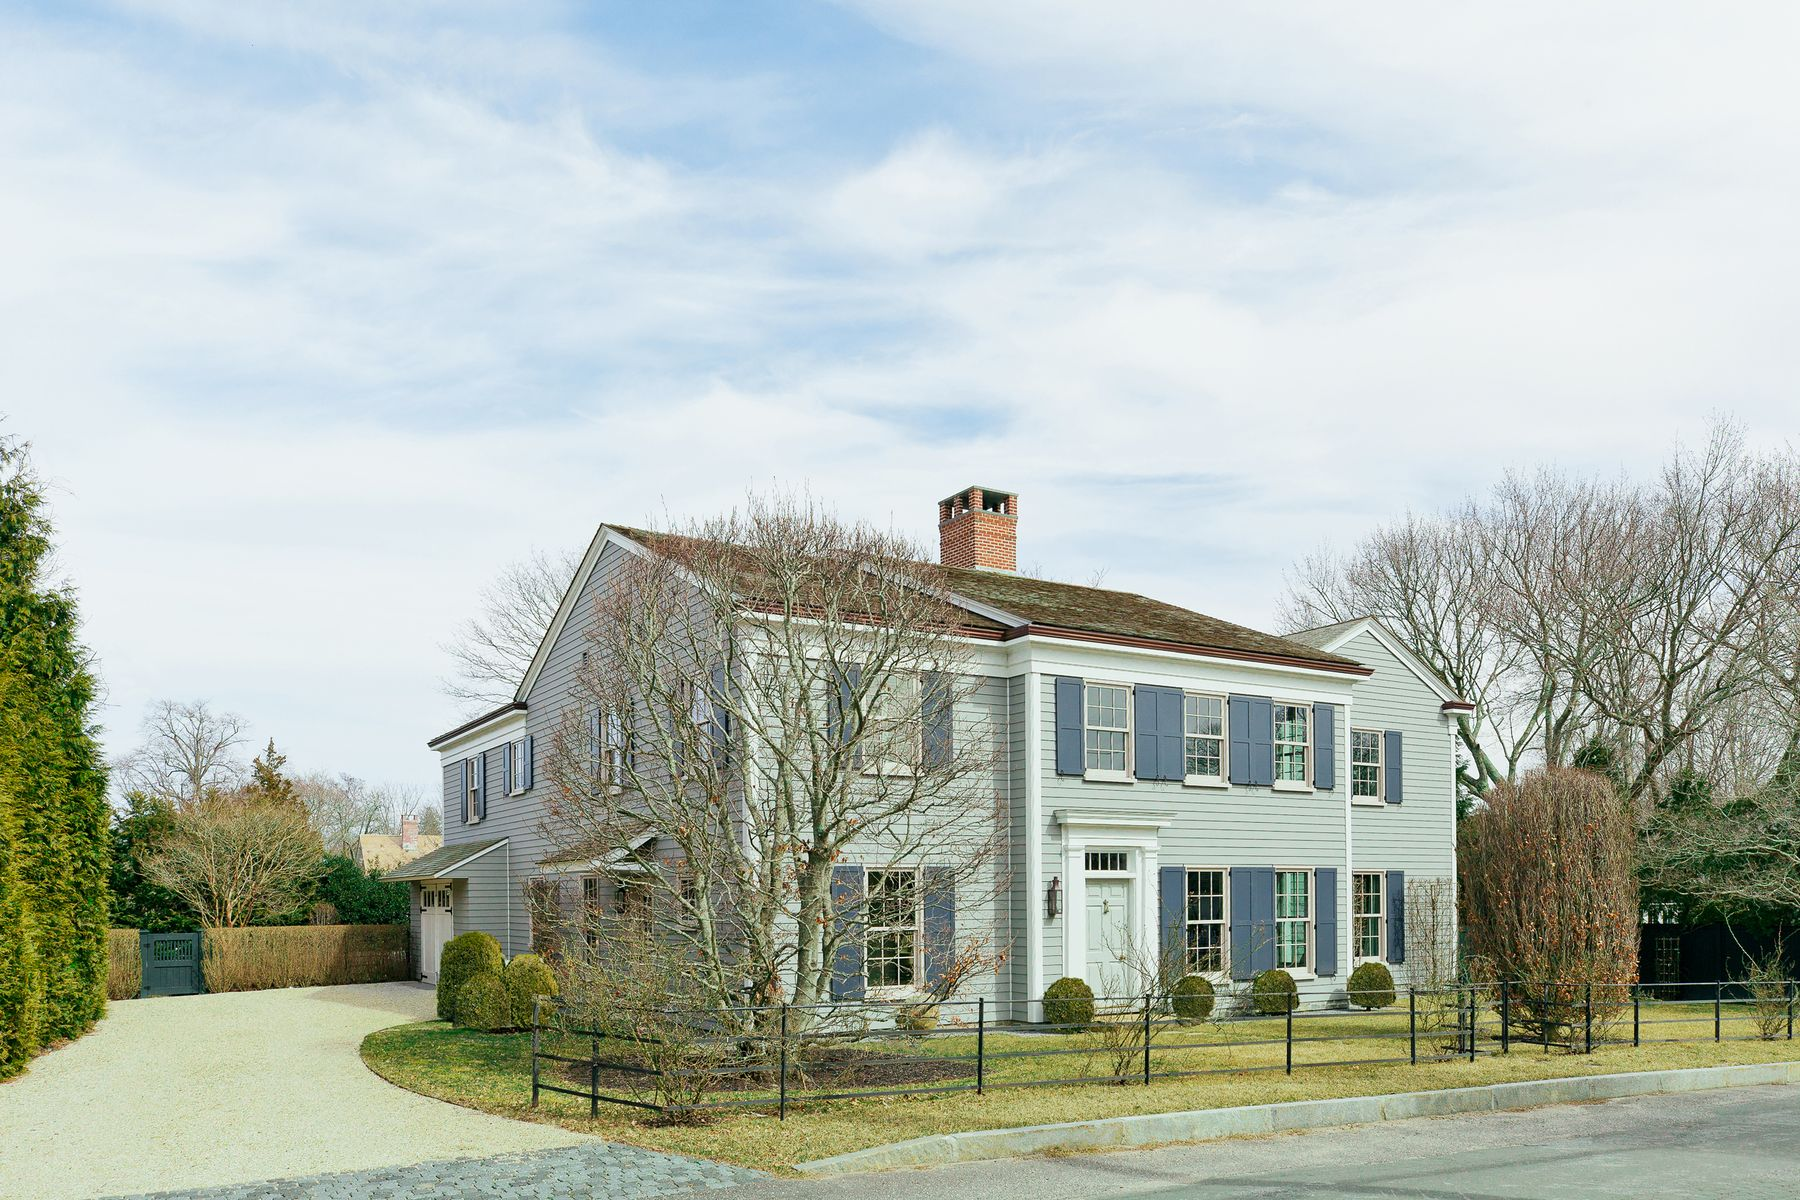 Single Family Home for Active at Luxury Reimagined in Sag Harbor 43 Suffolk Street Sag Harbor, New York 11963 United States